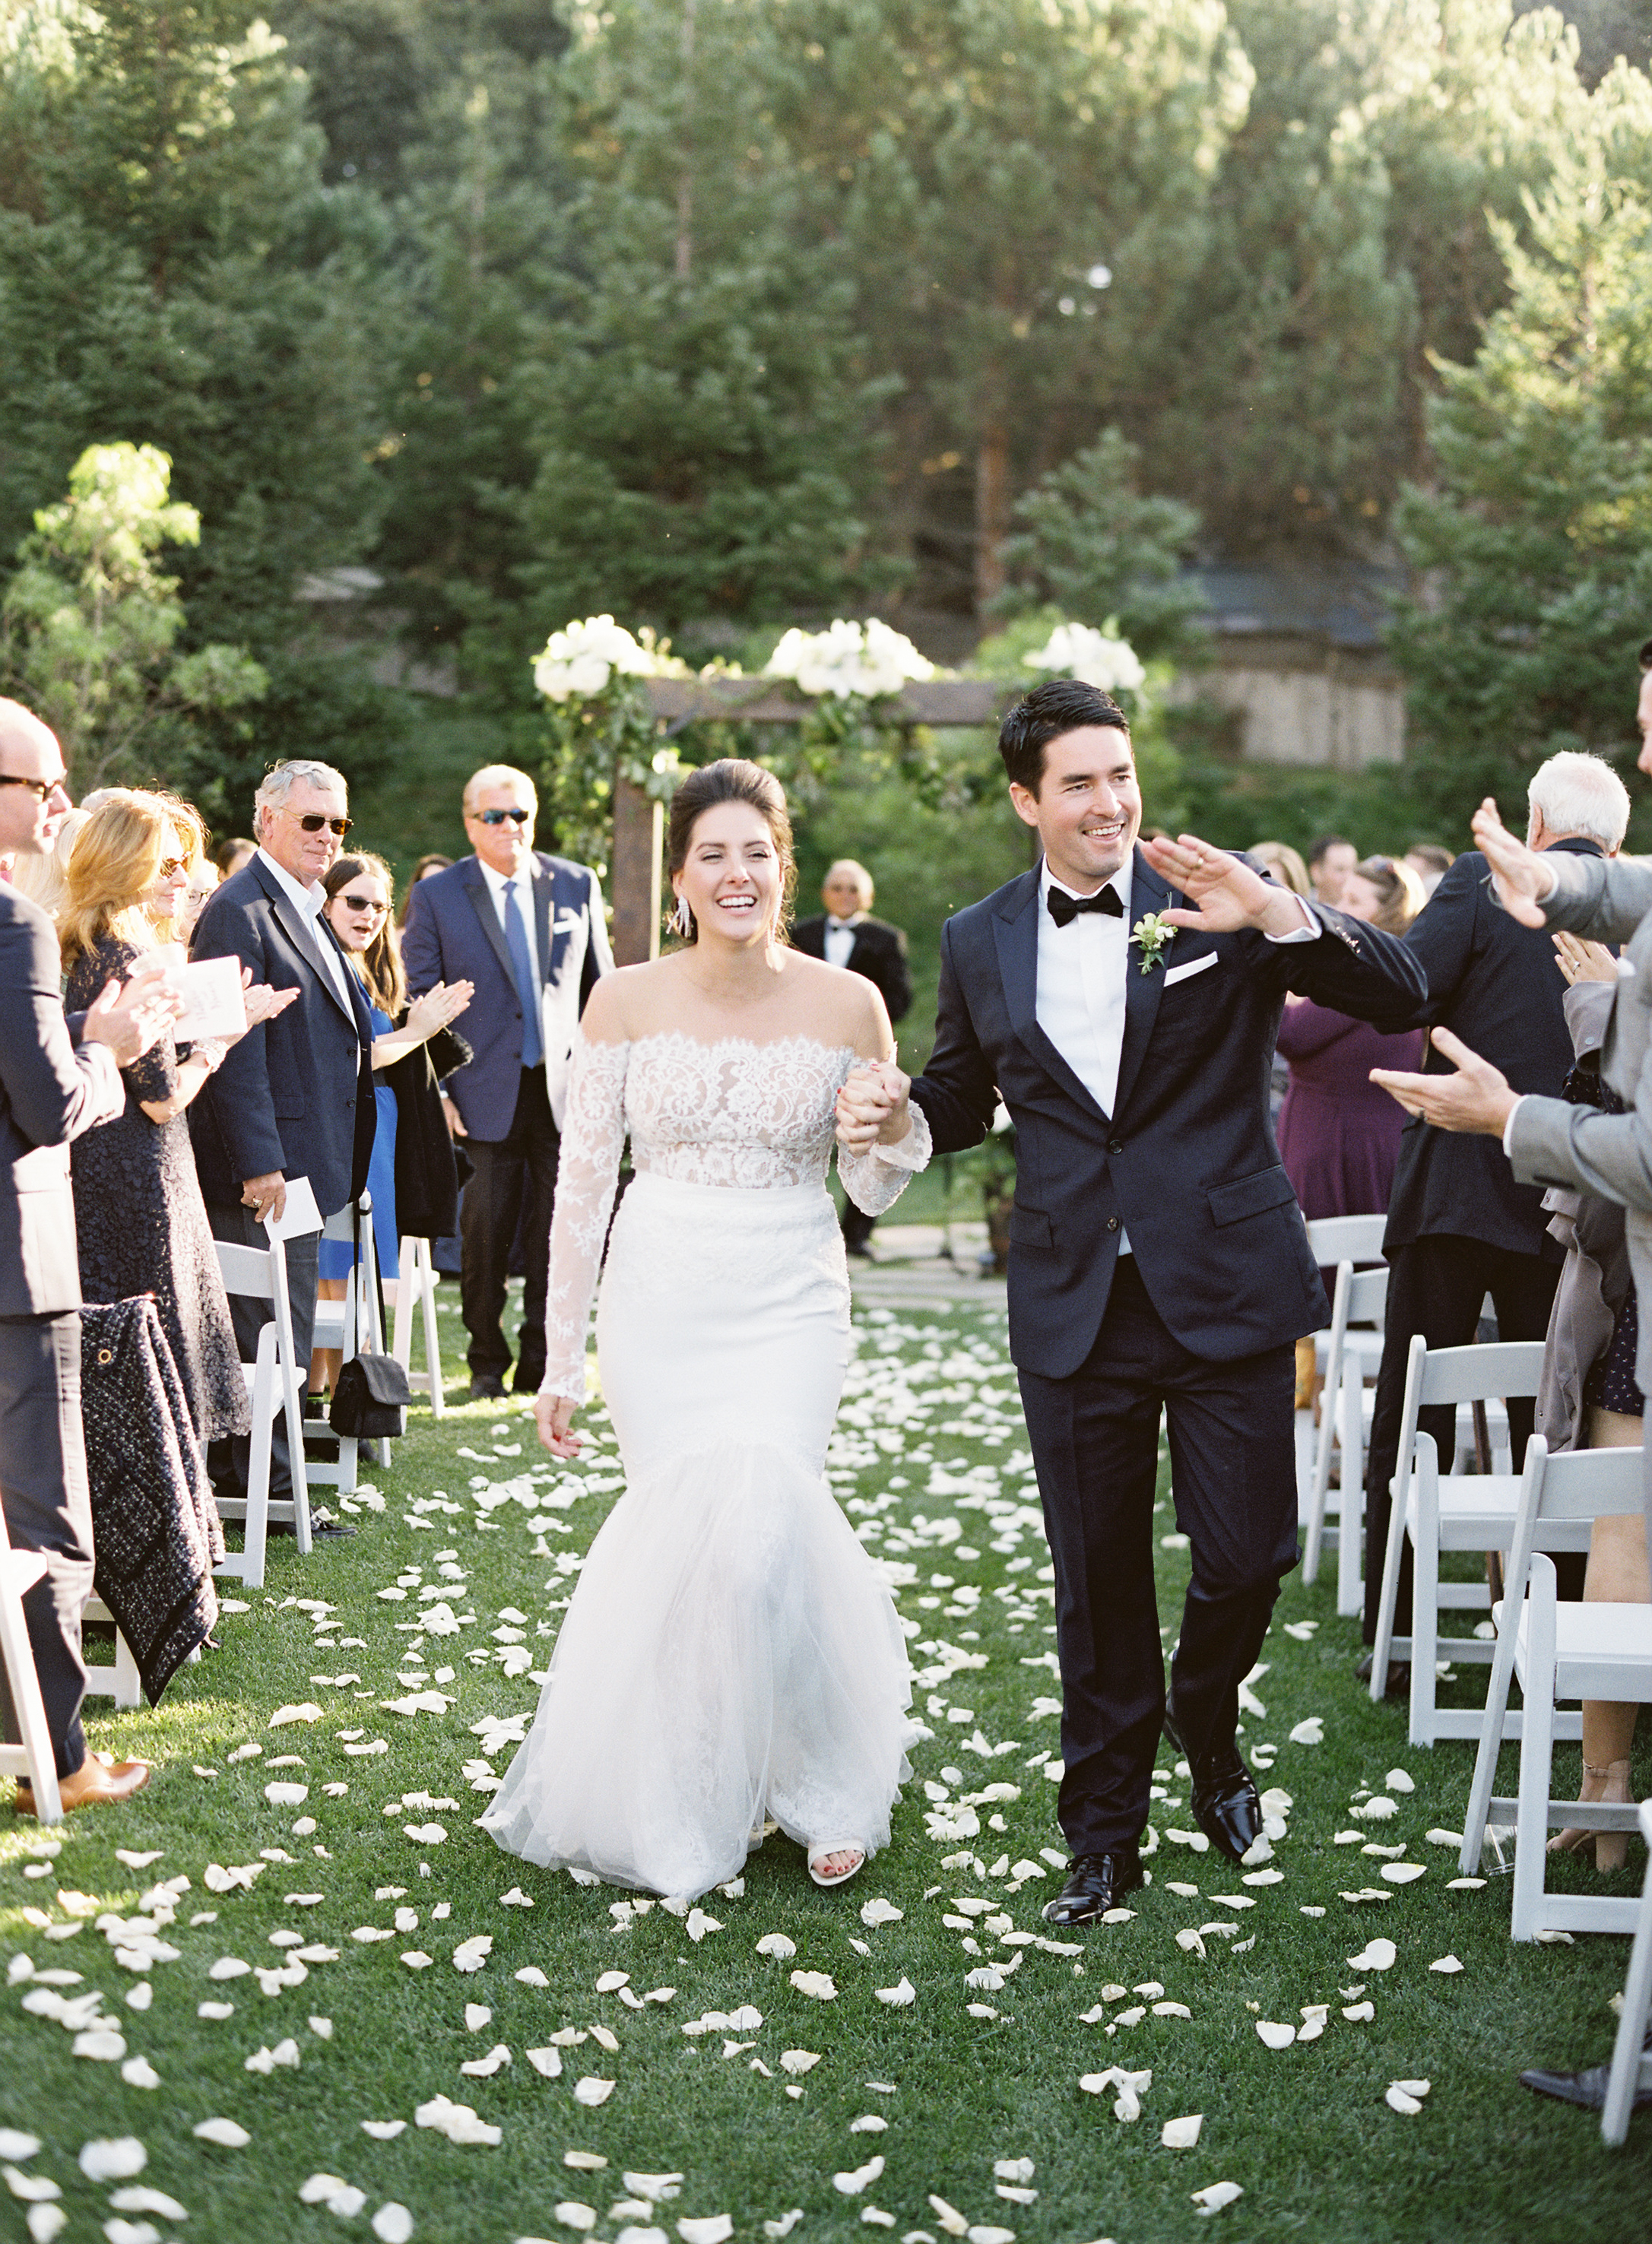 Meghan Mehan Photography - Carmel Valley Ranch Wedding 077.jpg